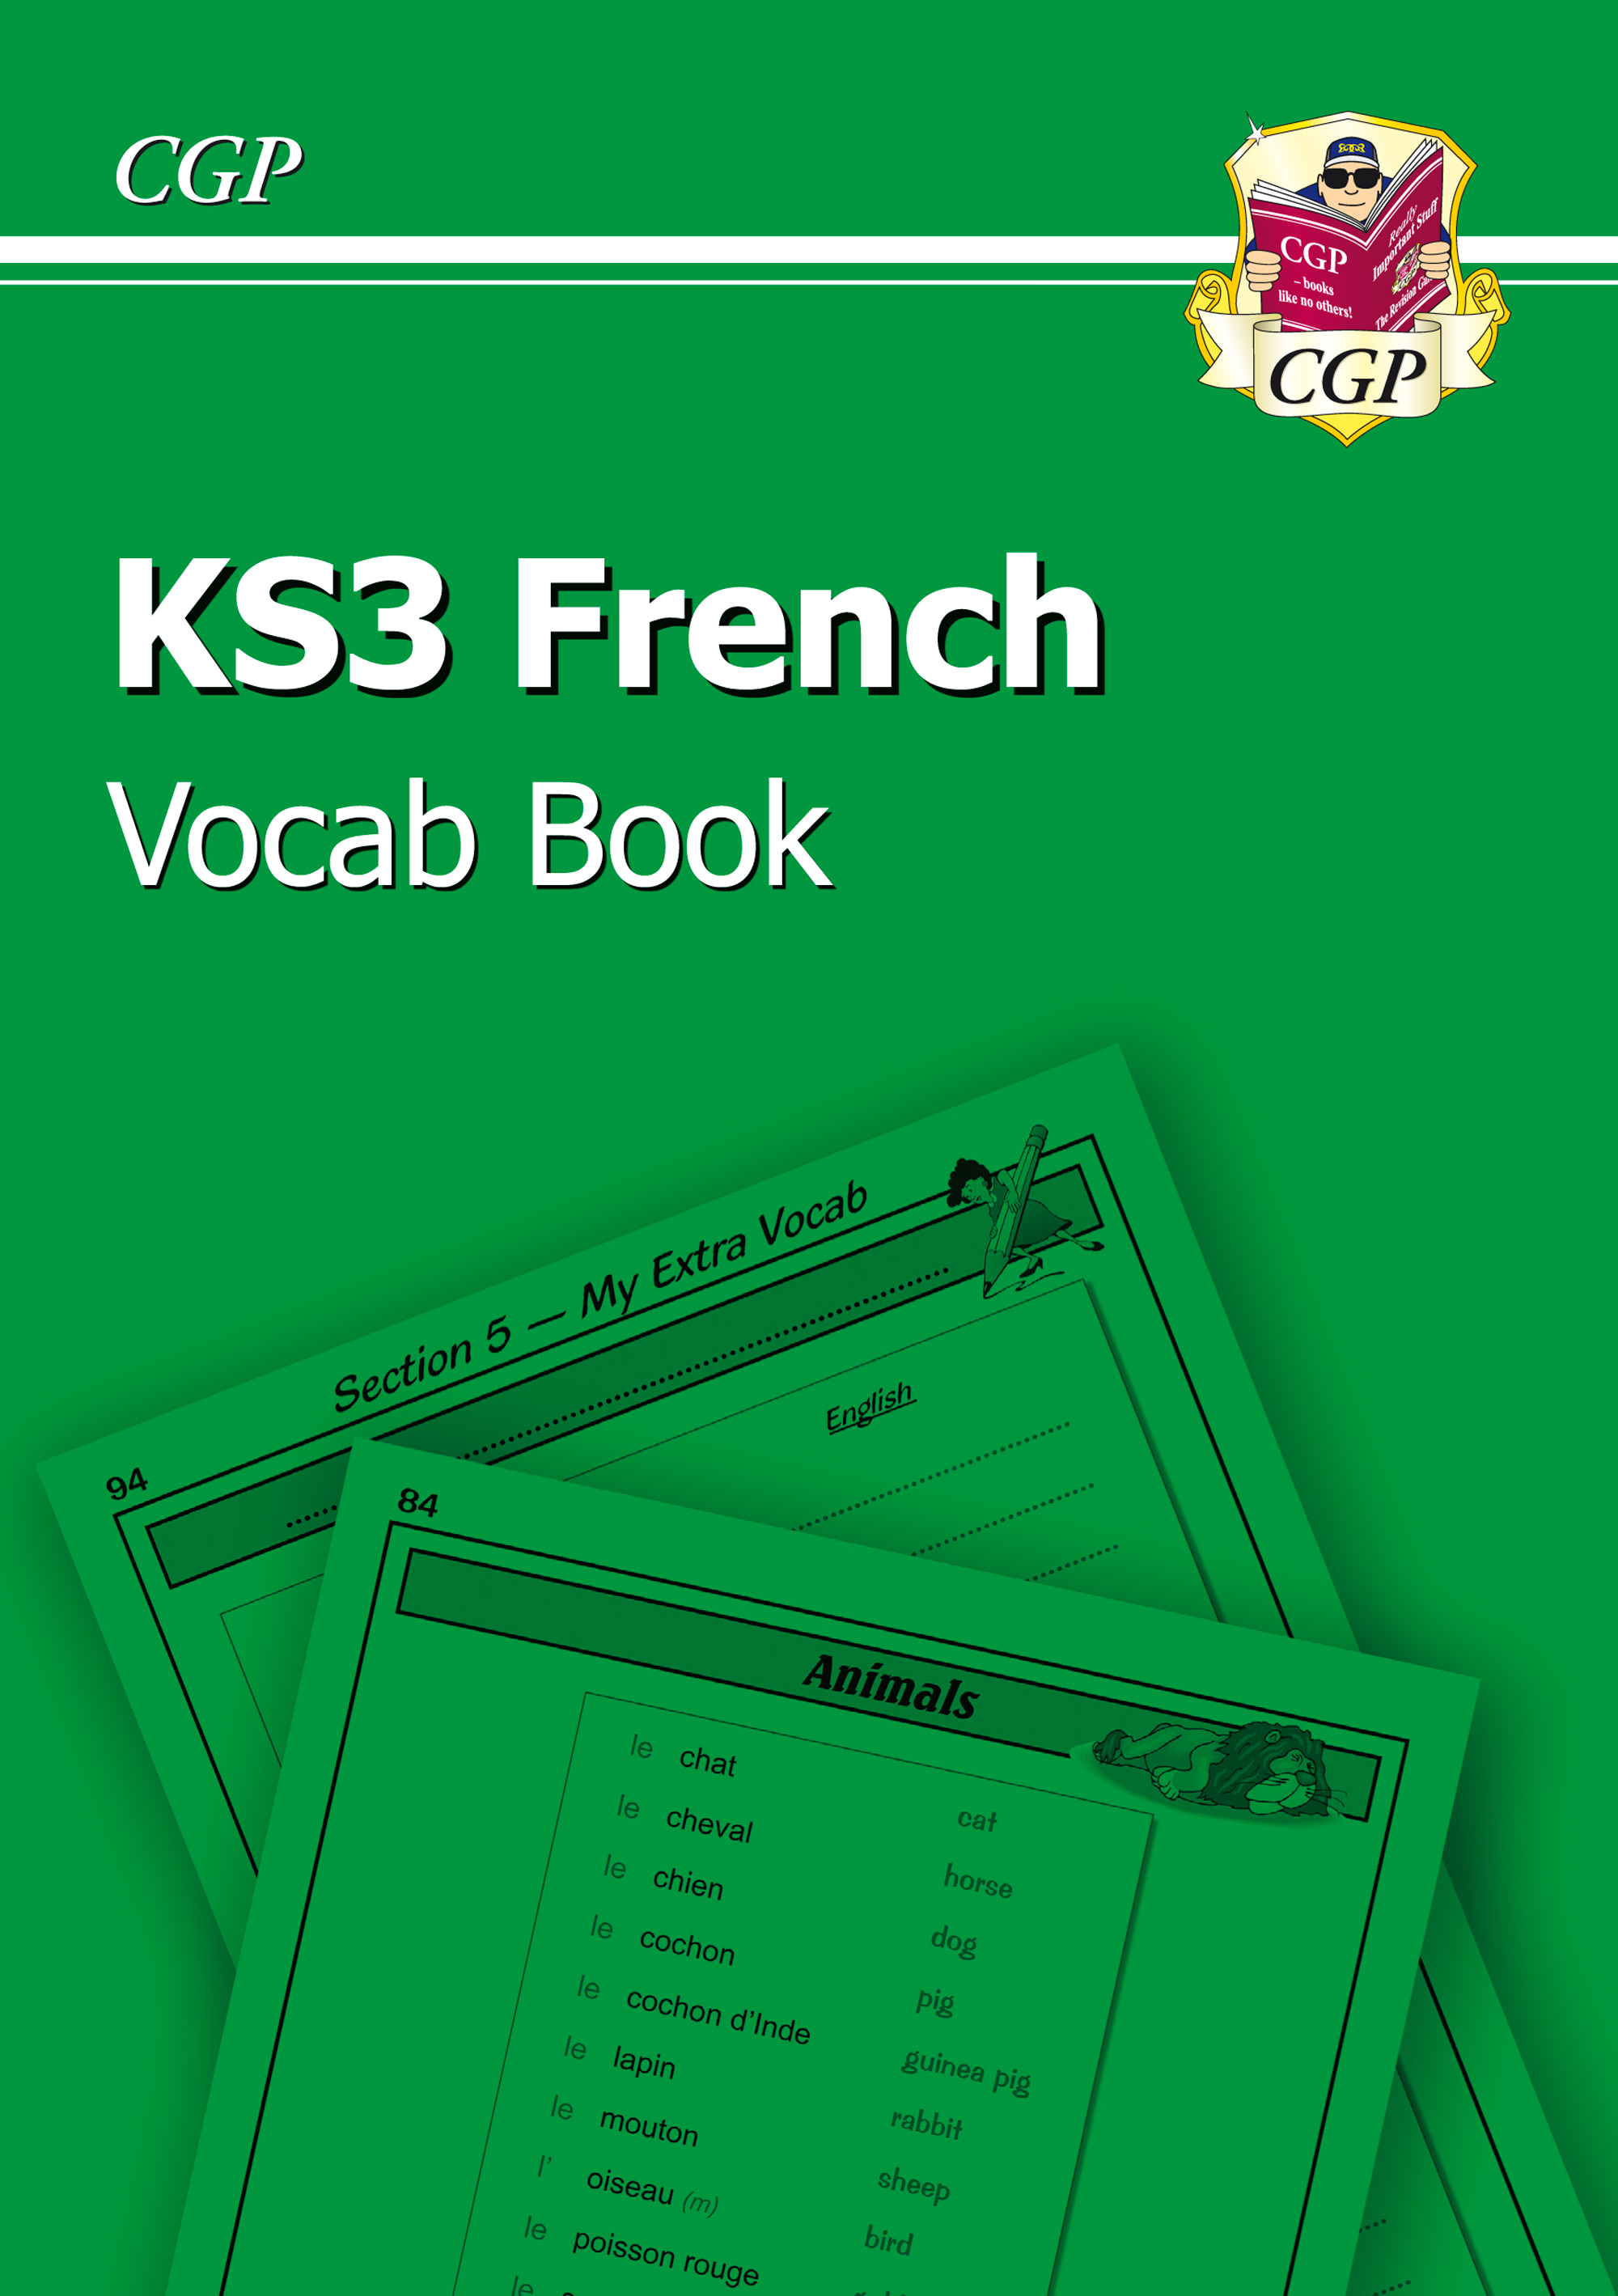 FHIC31U - KS3 French Interactive Vocab Tester Book